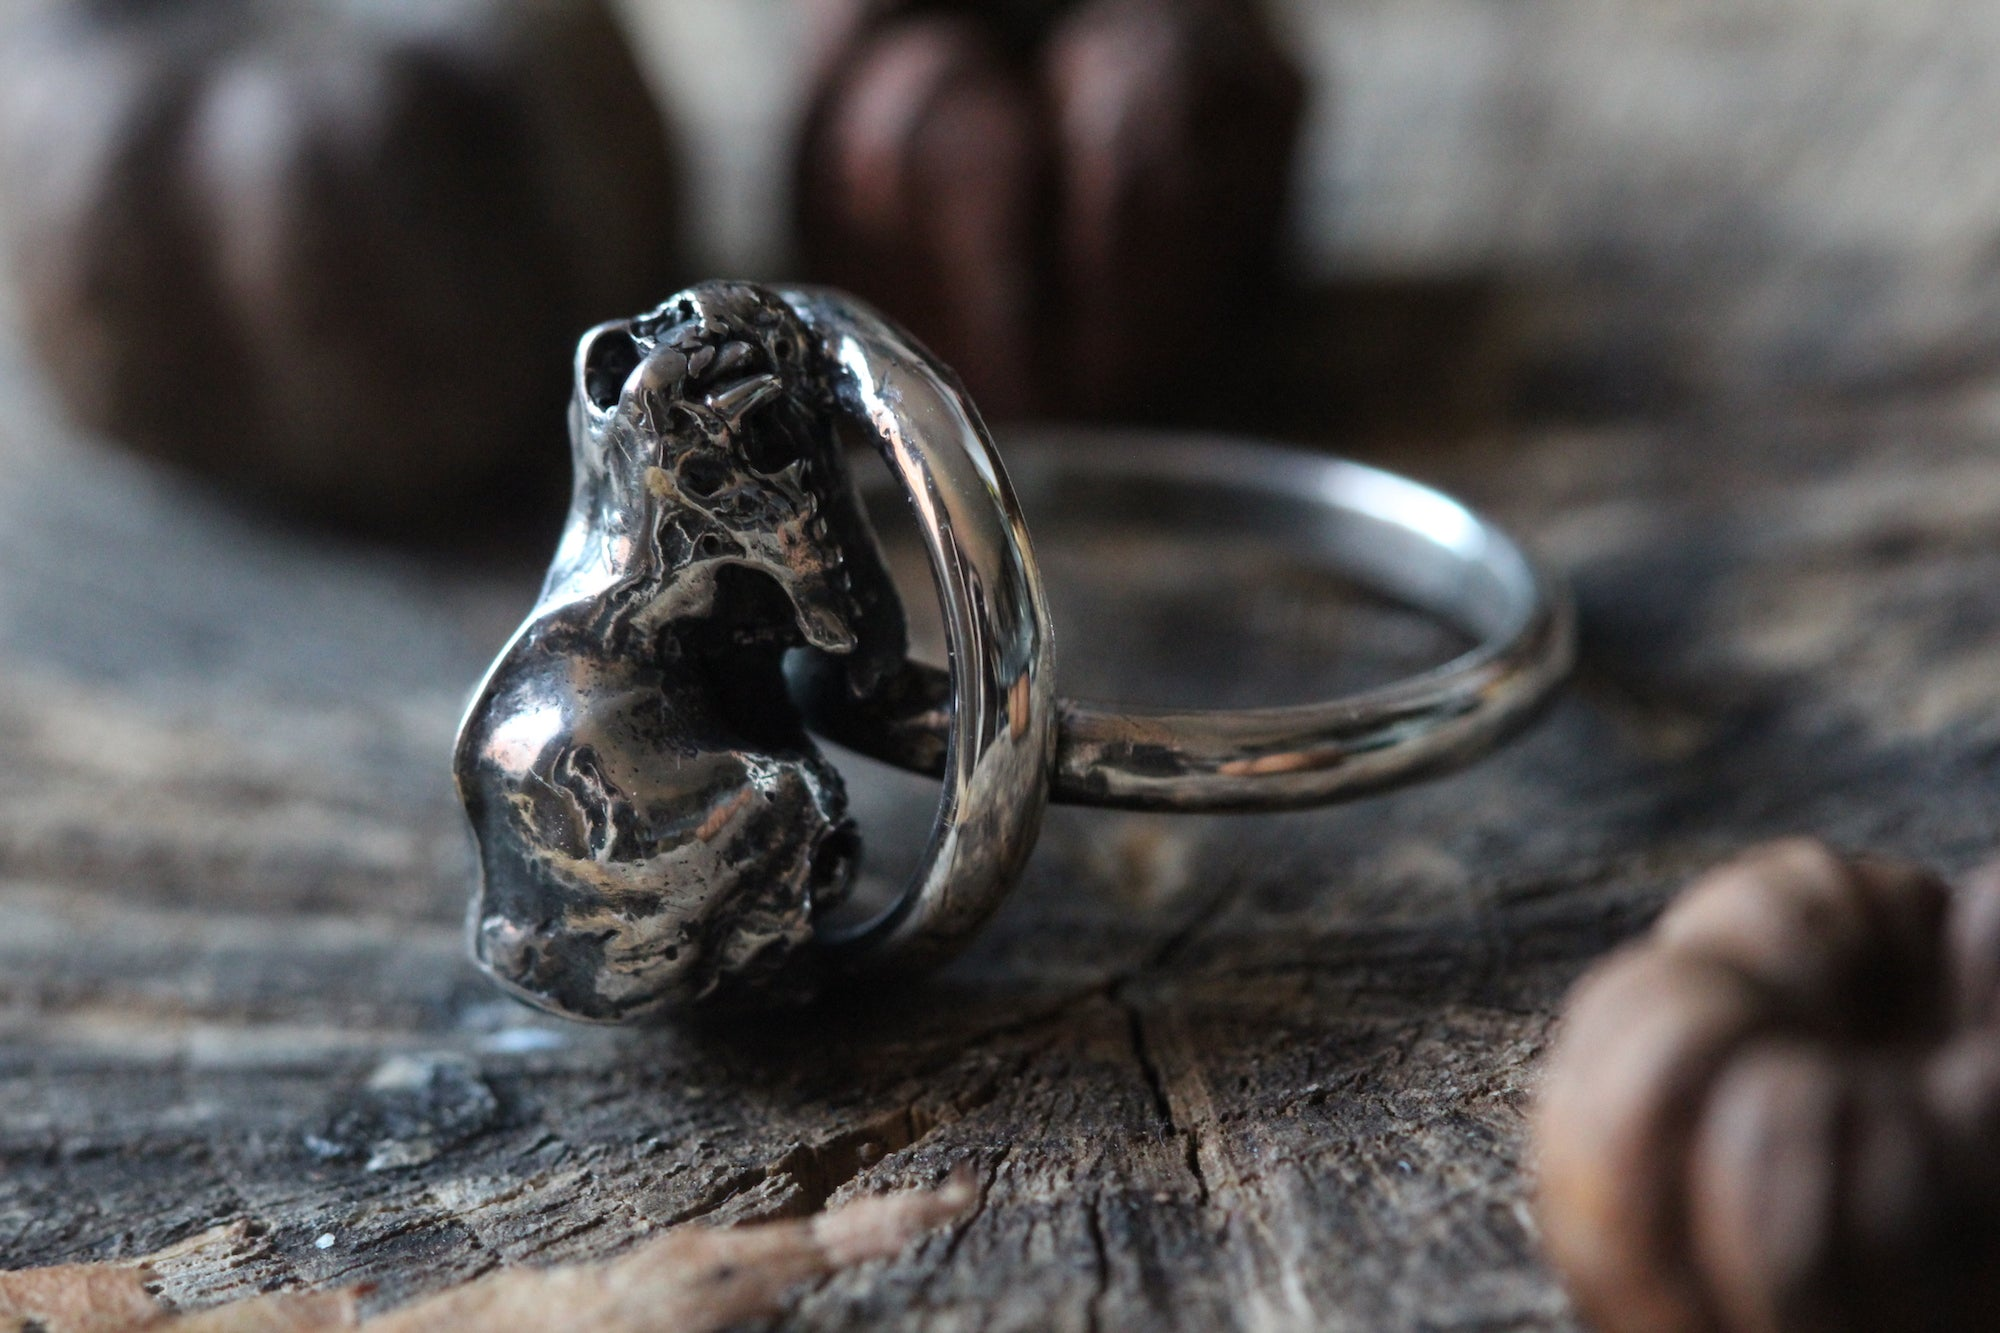 LETTING GO Sterling Silver Bat Skull Ring - Size L/5.5